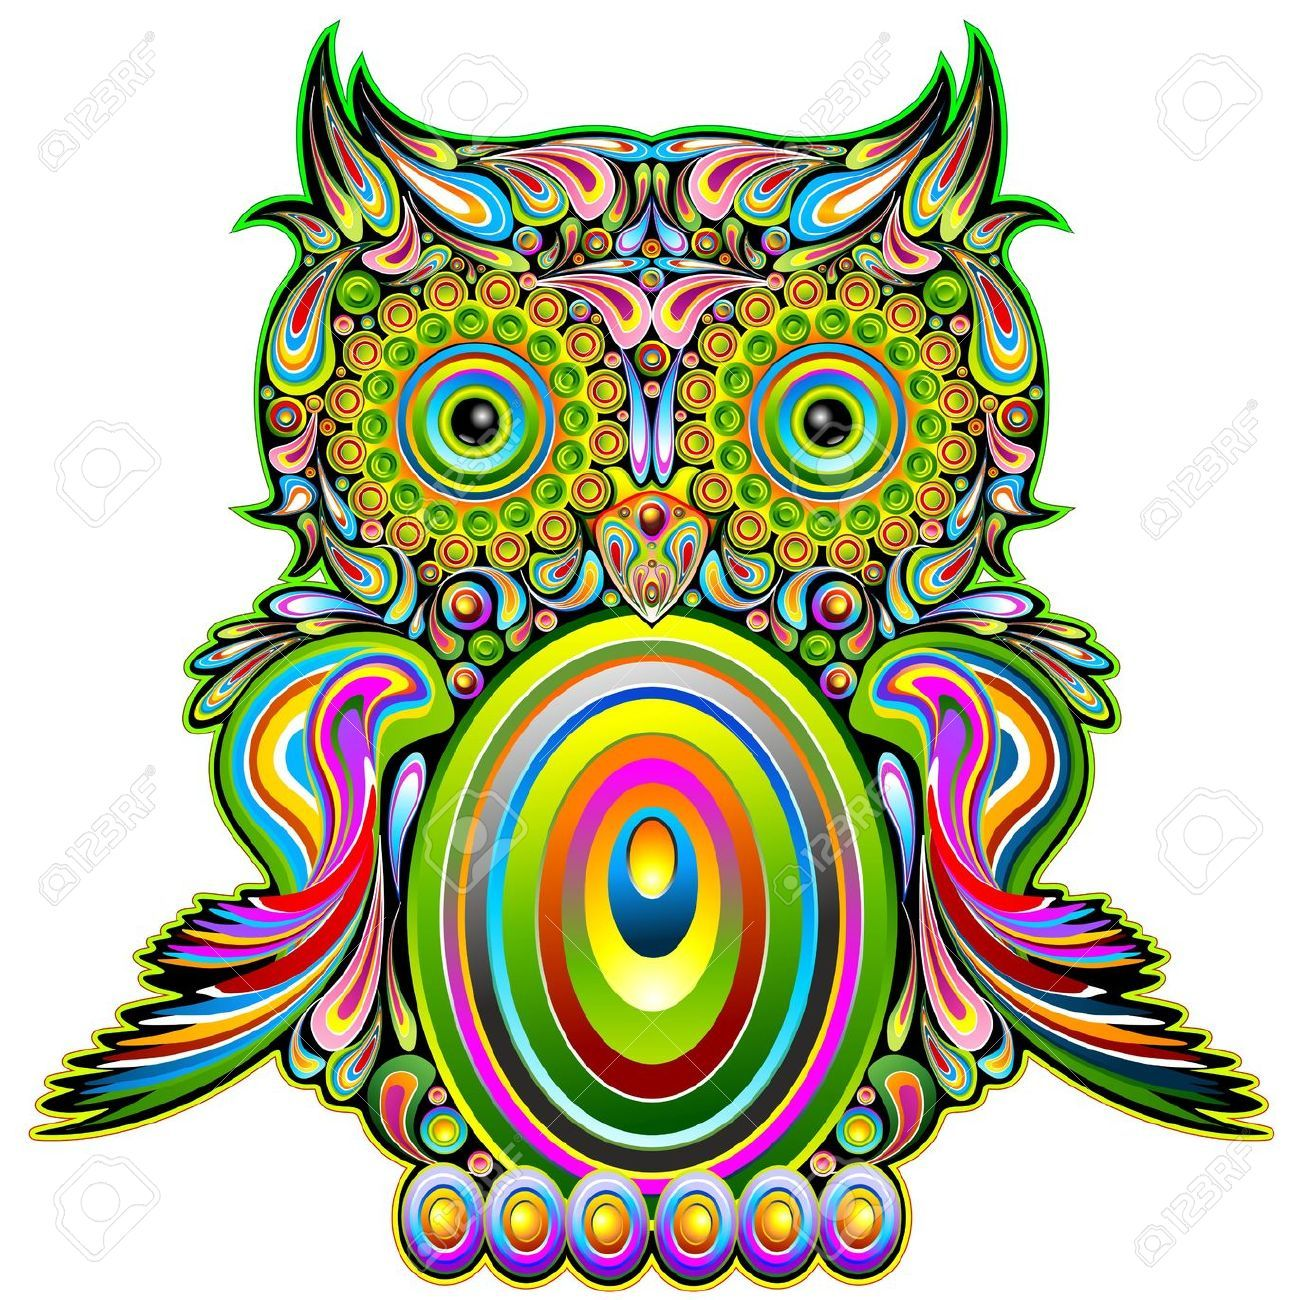 owl stock vector illustration and royalty free owl clipart tattoos rh pinterest co uk Free Mountain Vector Free Vector Flowers